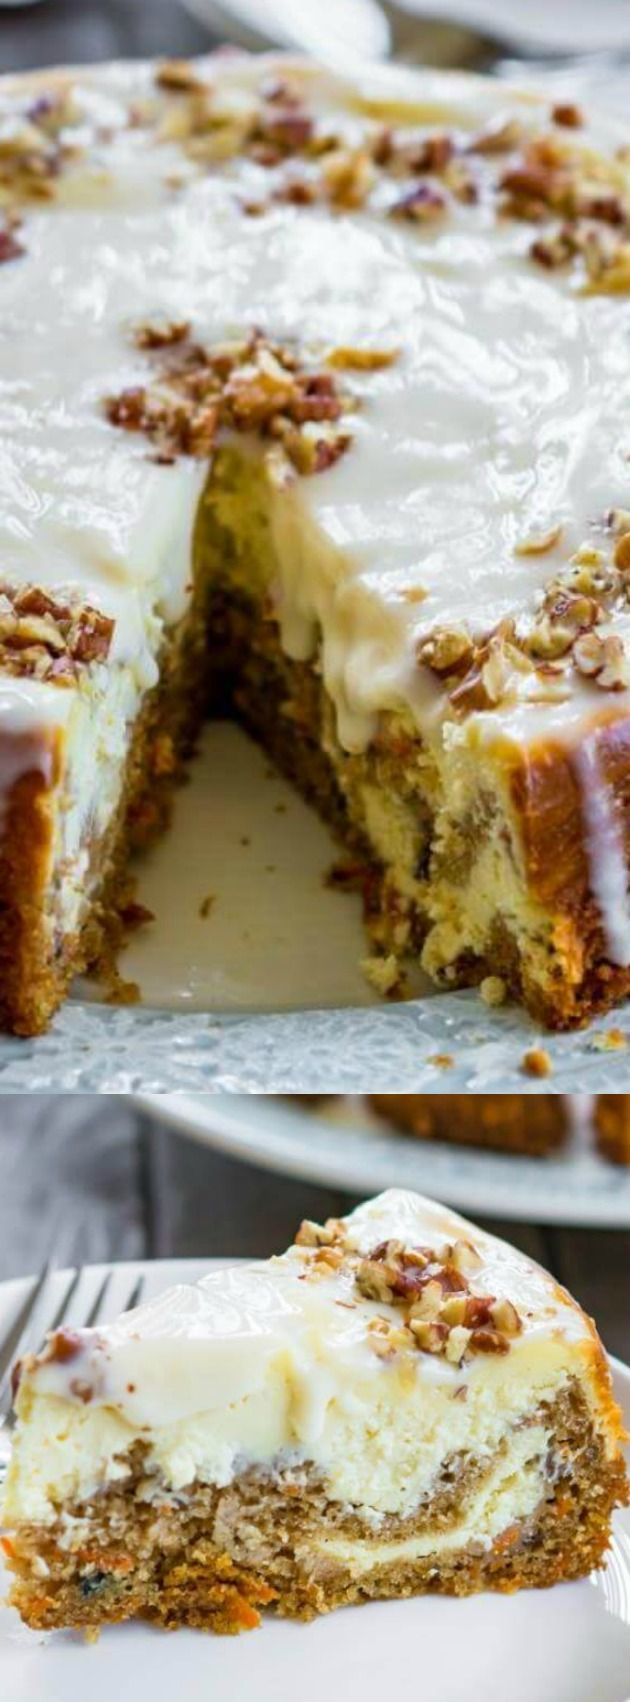 This Carrot Cake Cheesecake from Chef de Home is a mixture of two delicious cakes that will be the star at any holiday party you host! The carrot cake and cheesecake flavors are so perfect together, and the sour cream glaze and walnuts top it of beautifully!